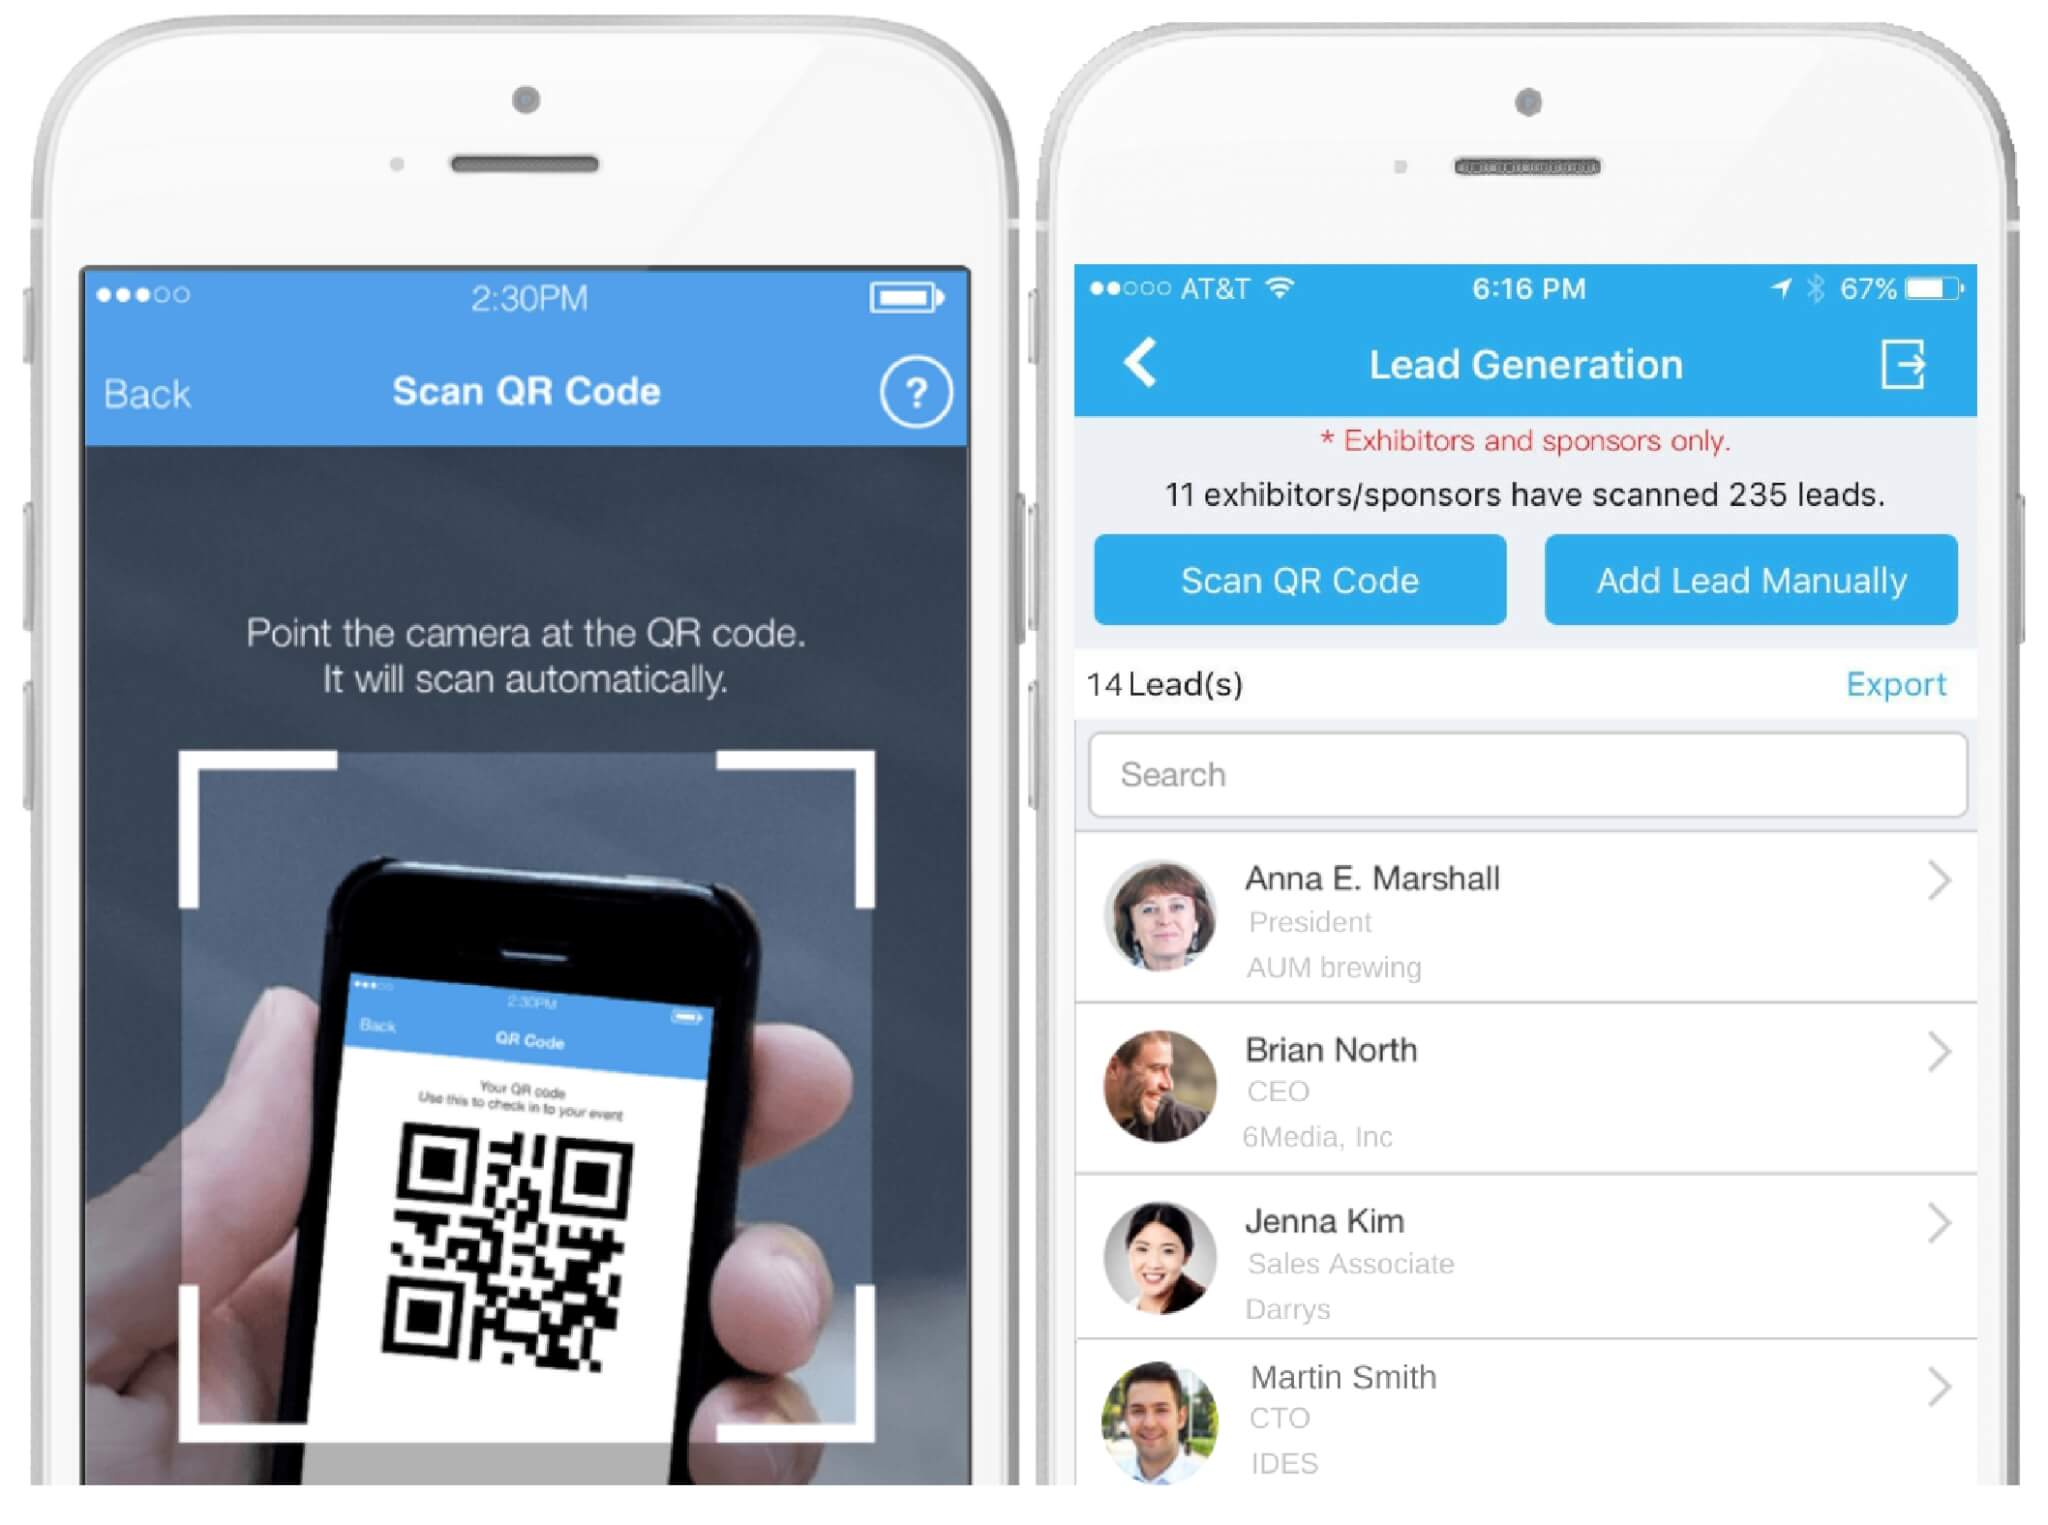 QR Scanner in the Whova Event App